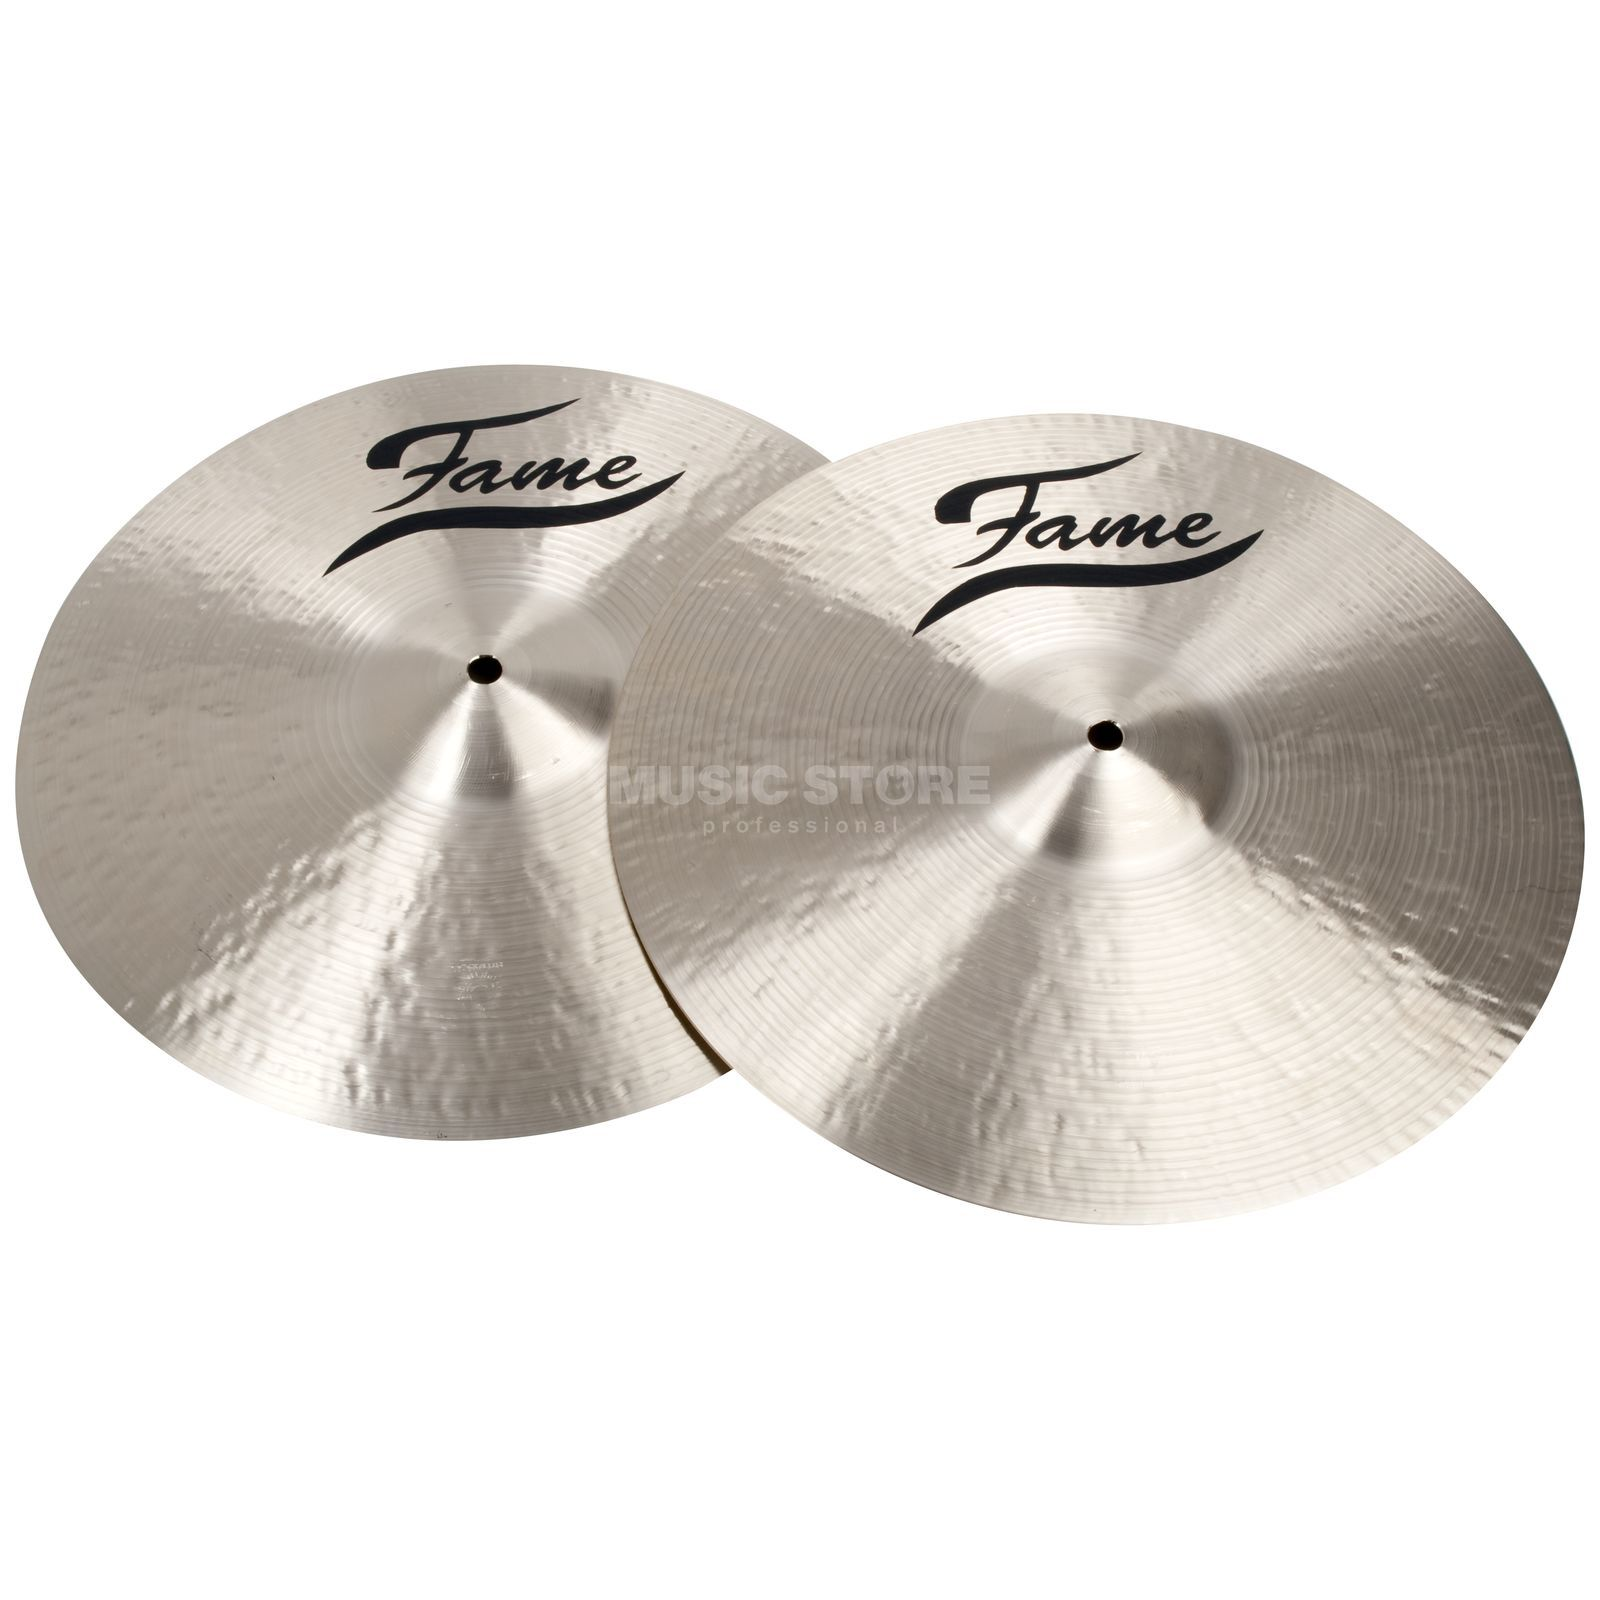 "Fame Masters B20 HiHat 14"" Natural Finish Изображение товара"